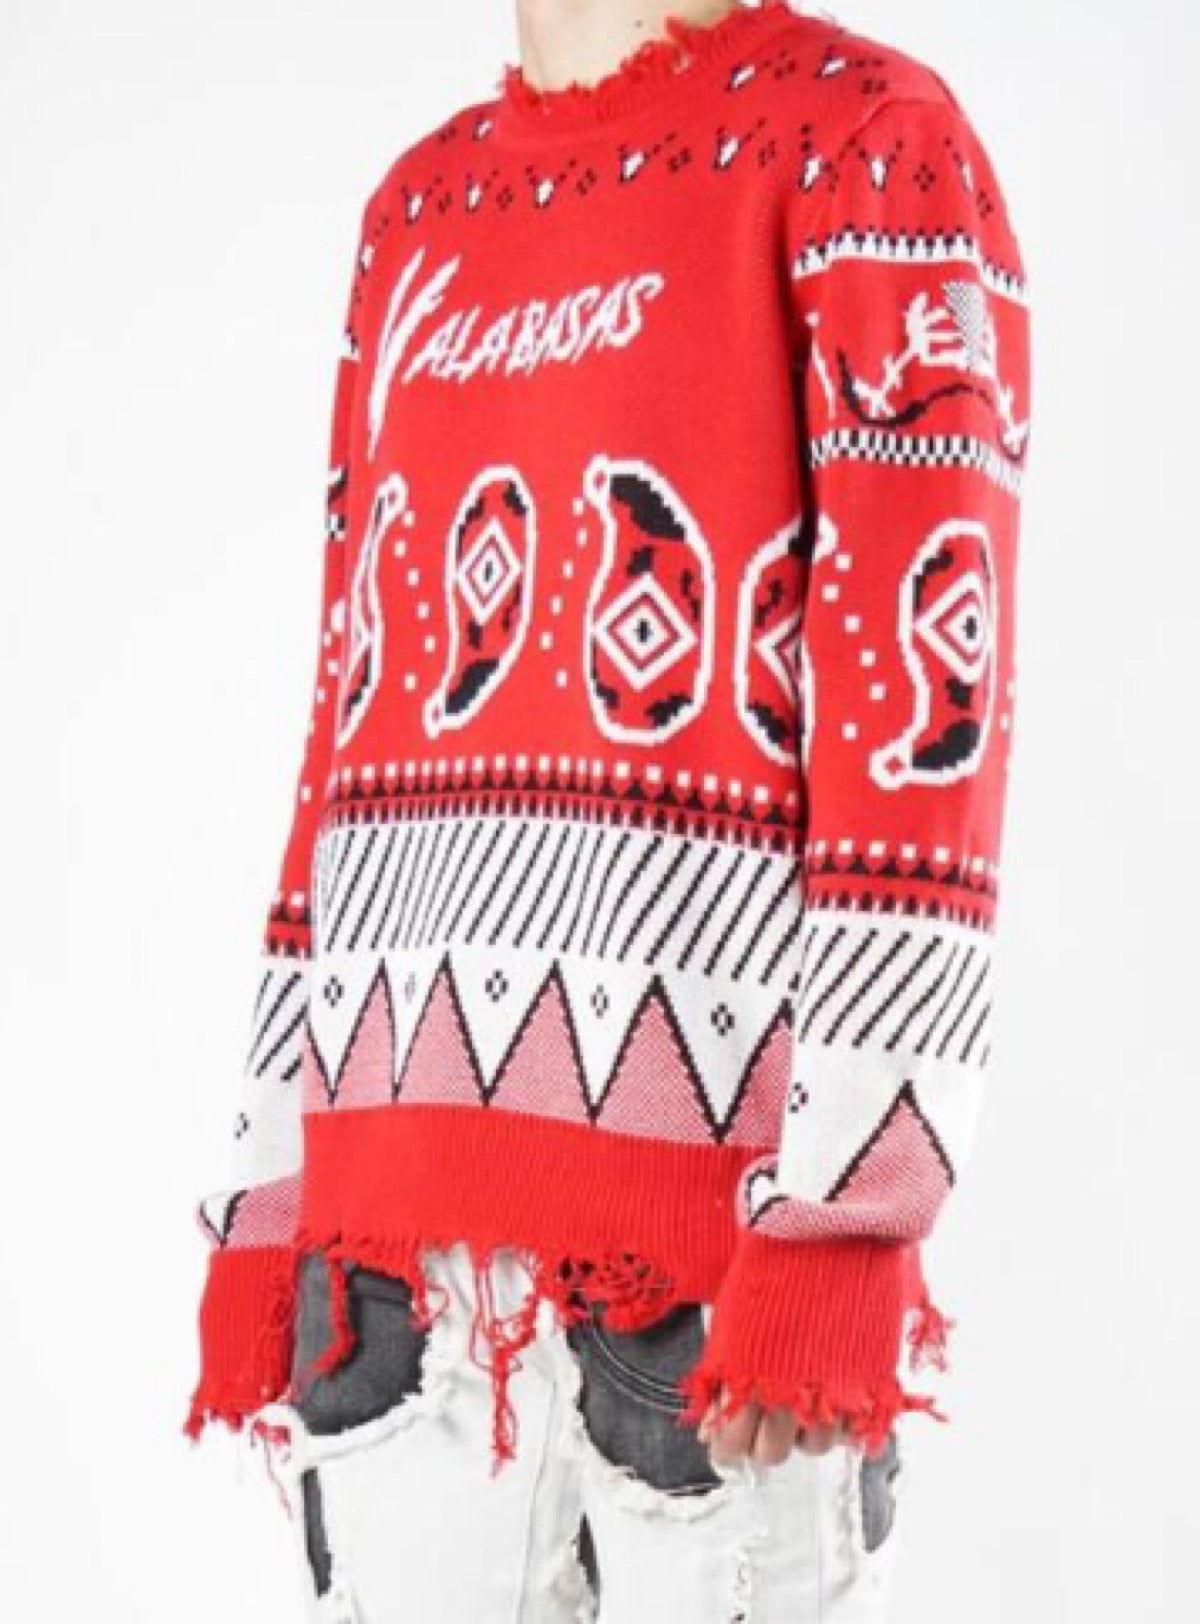 Valabasas Sweater - Pledge 2.0 - Red - VLBS2187